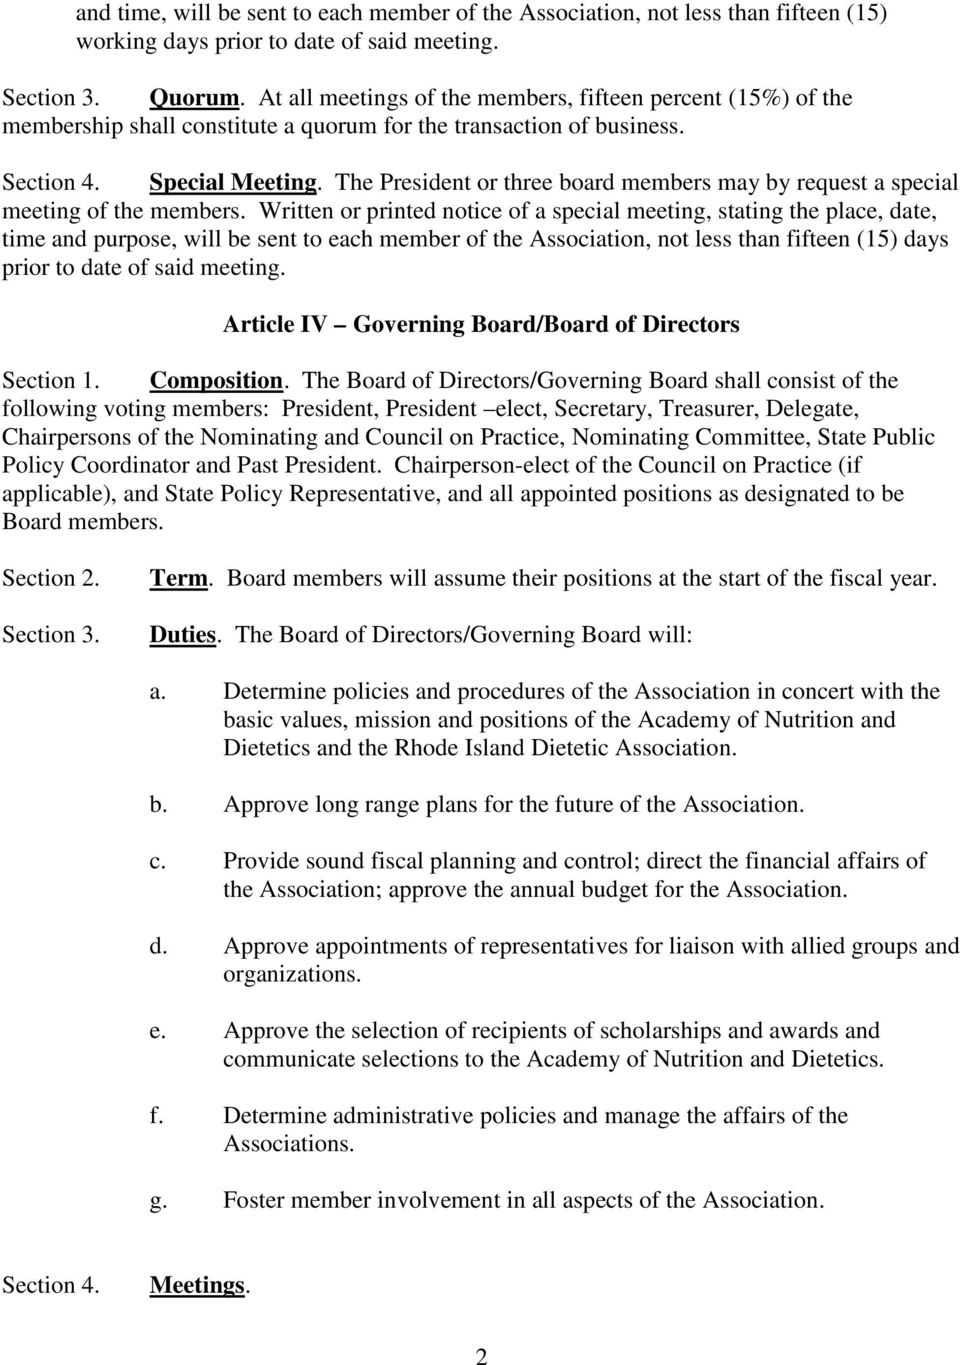 The President or three board members may by request a special meeting of the members.